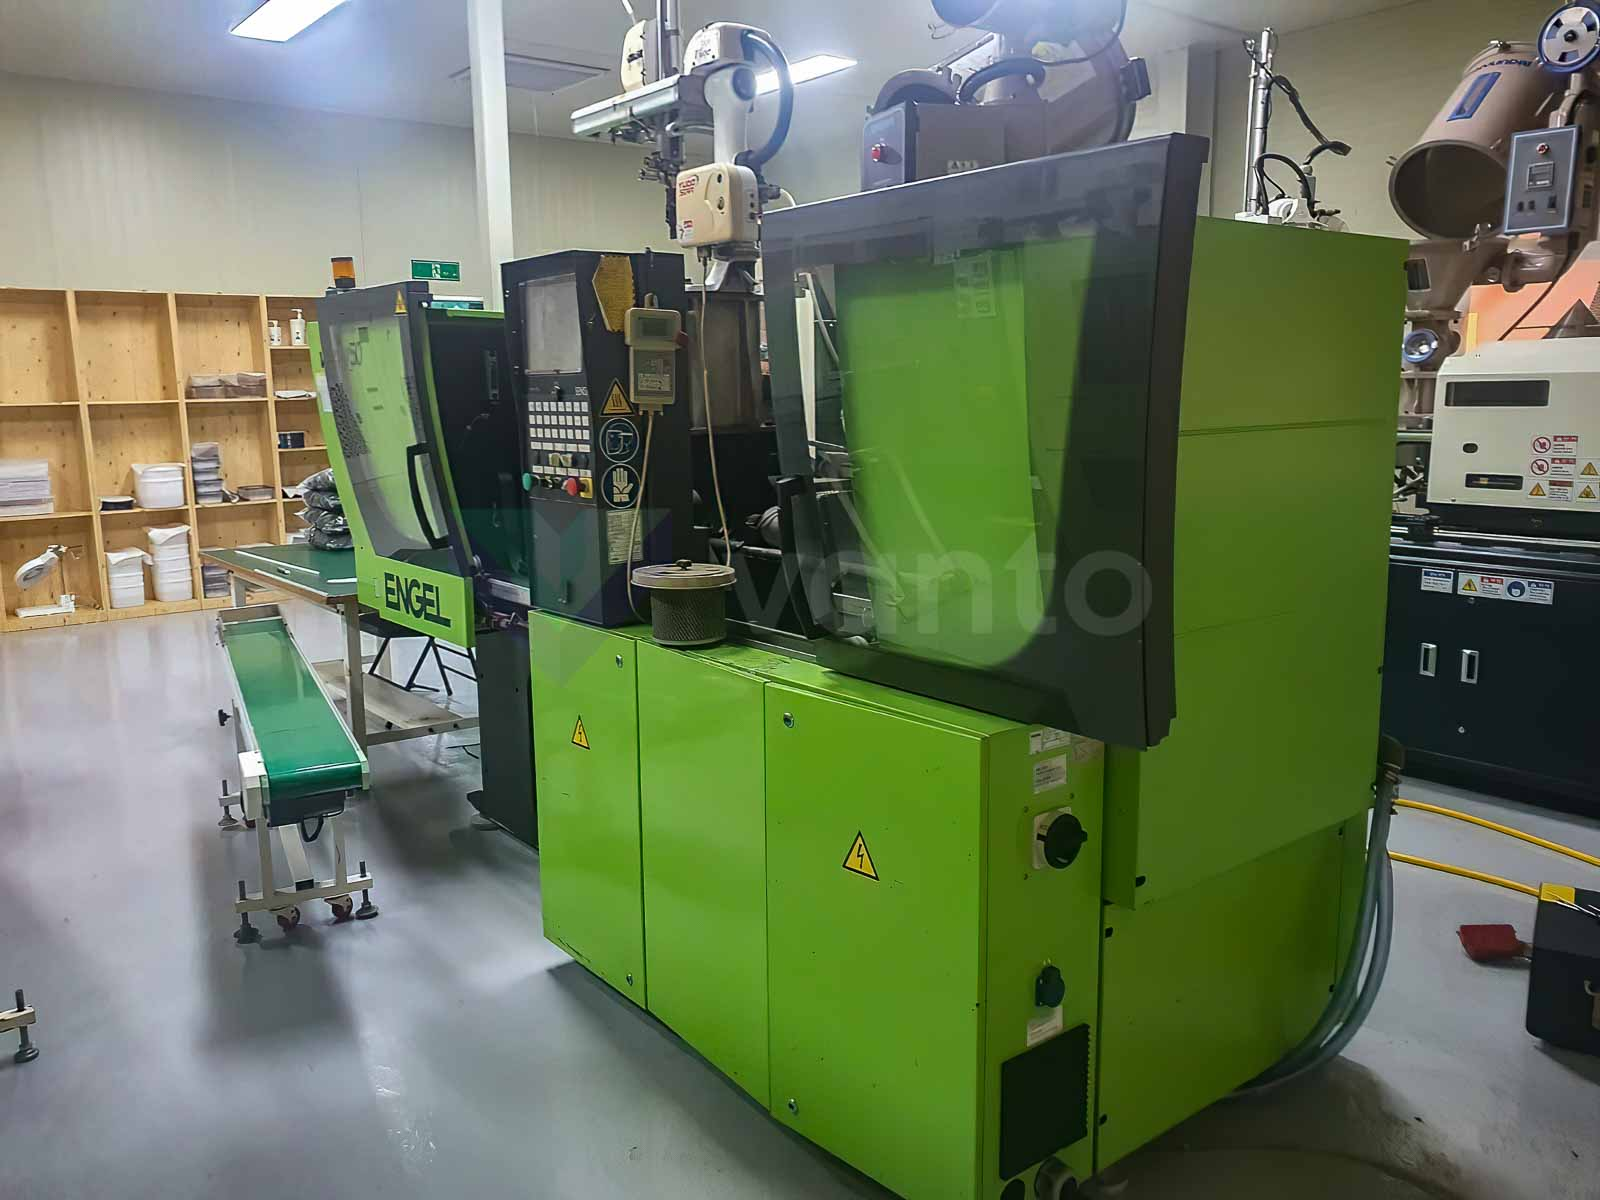 ENGEL VICTORY VC 80 / 50 TECH PRO 50t injection molding machine (2007) id10539